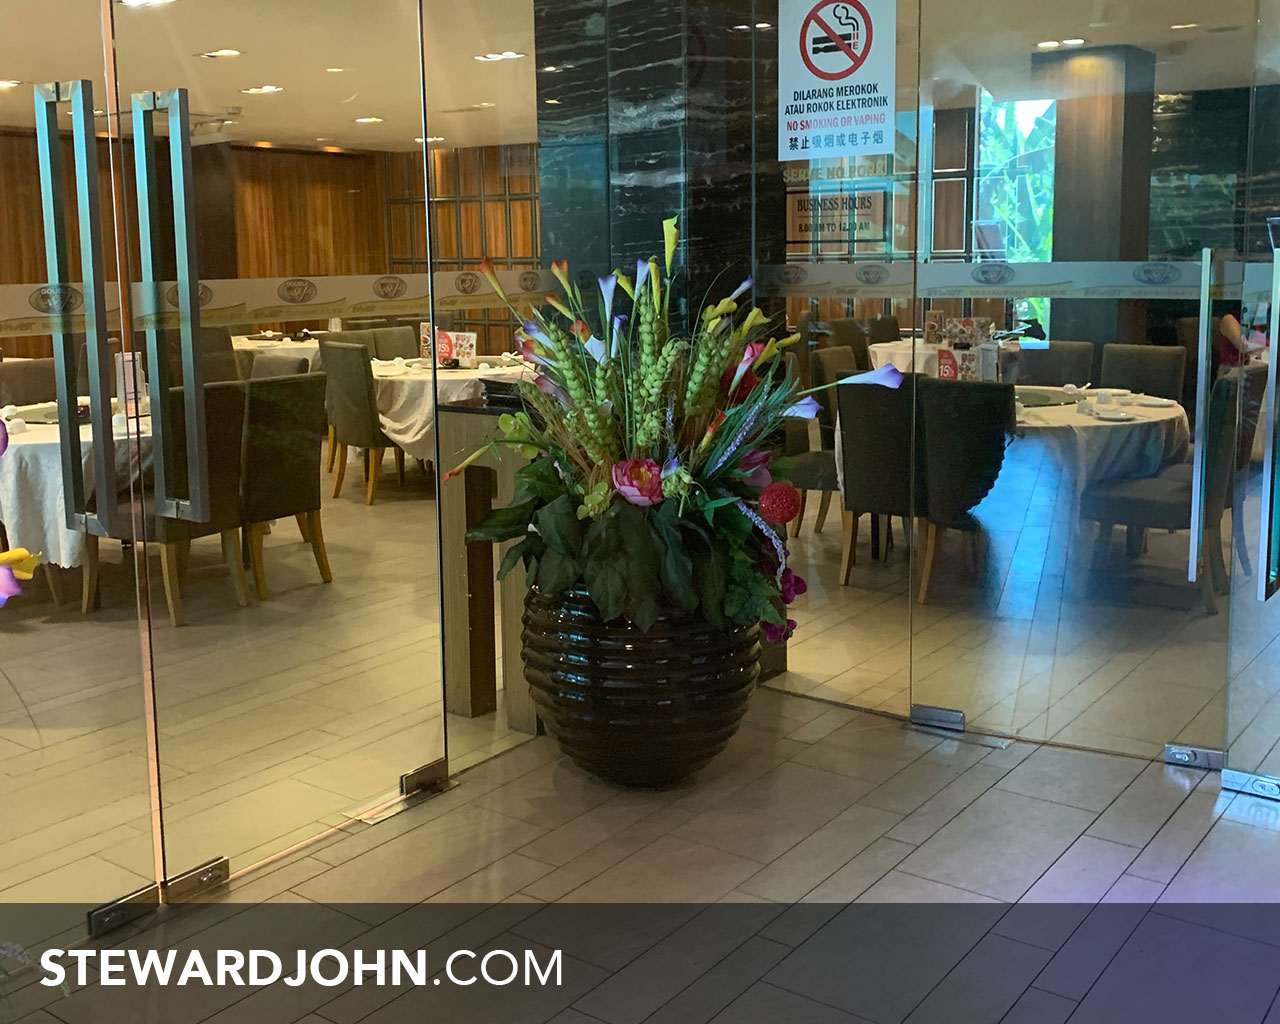 E-west restaurant - located on the 1st floor of the building